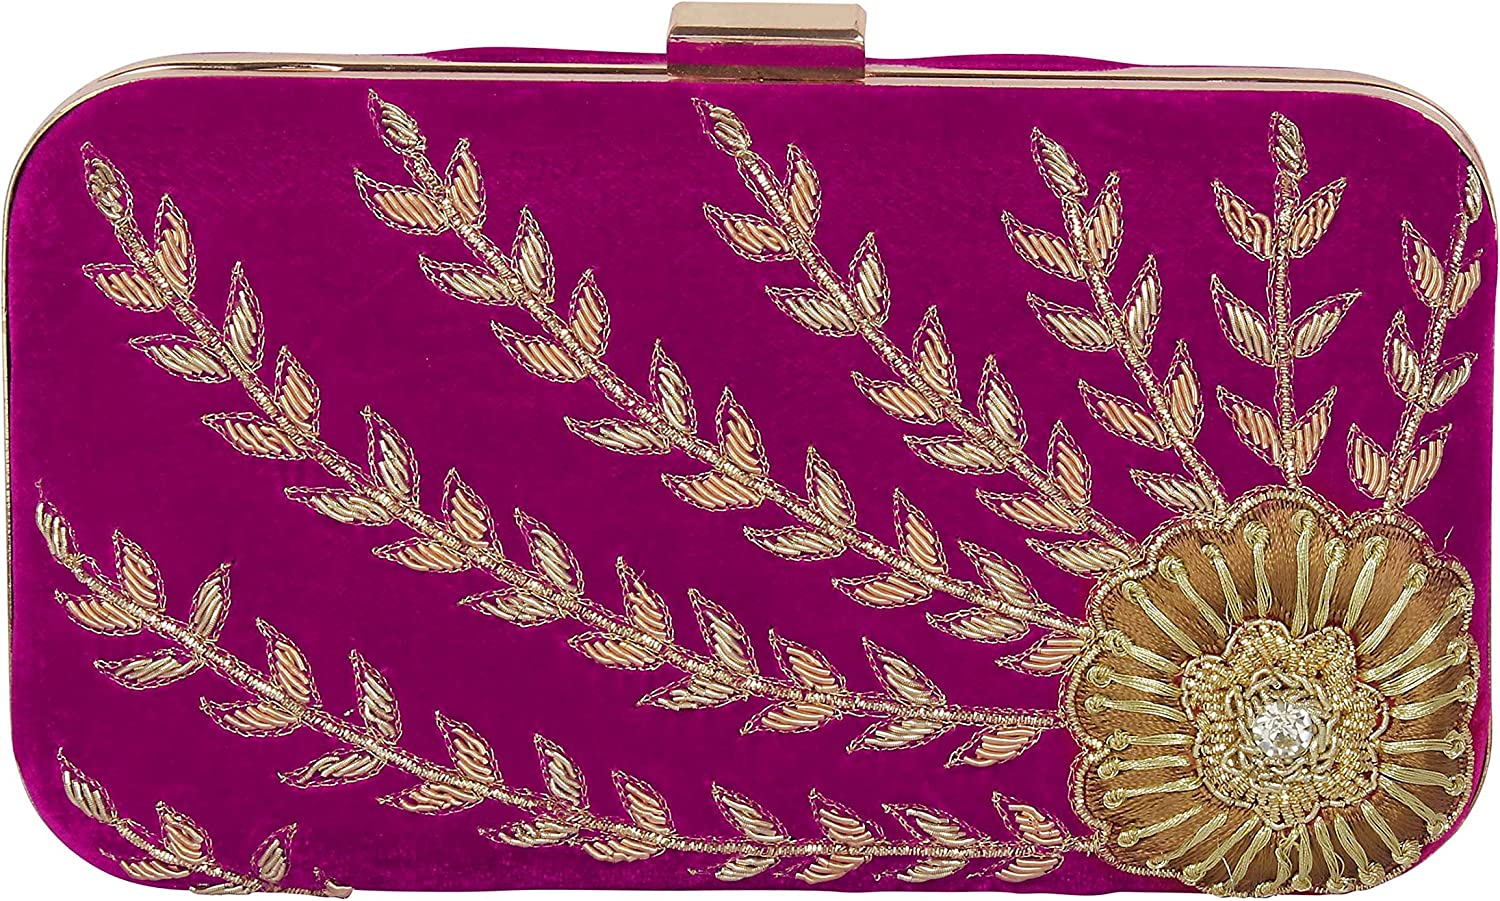 { Extra 10% Discount } Purse Collection Attractive Handmade Rani Bridal Clutch With Embroidery Work For Women's